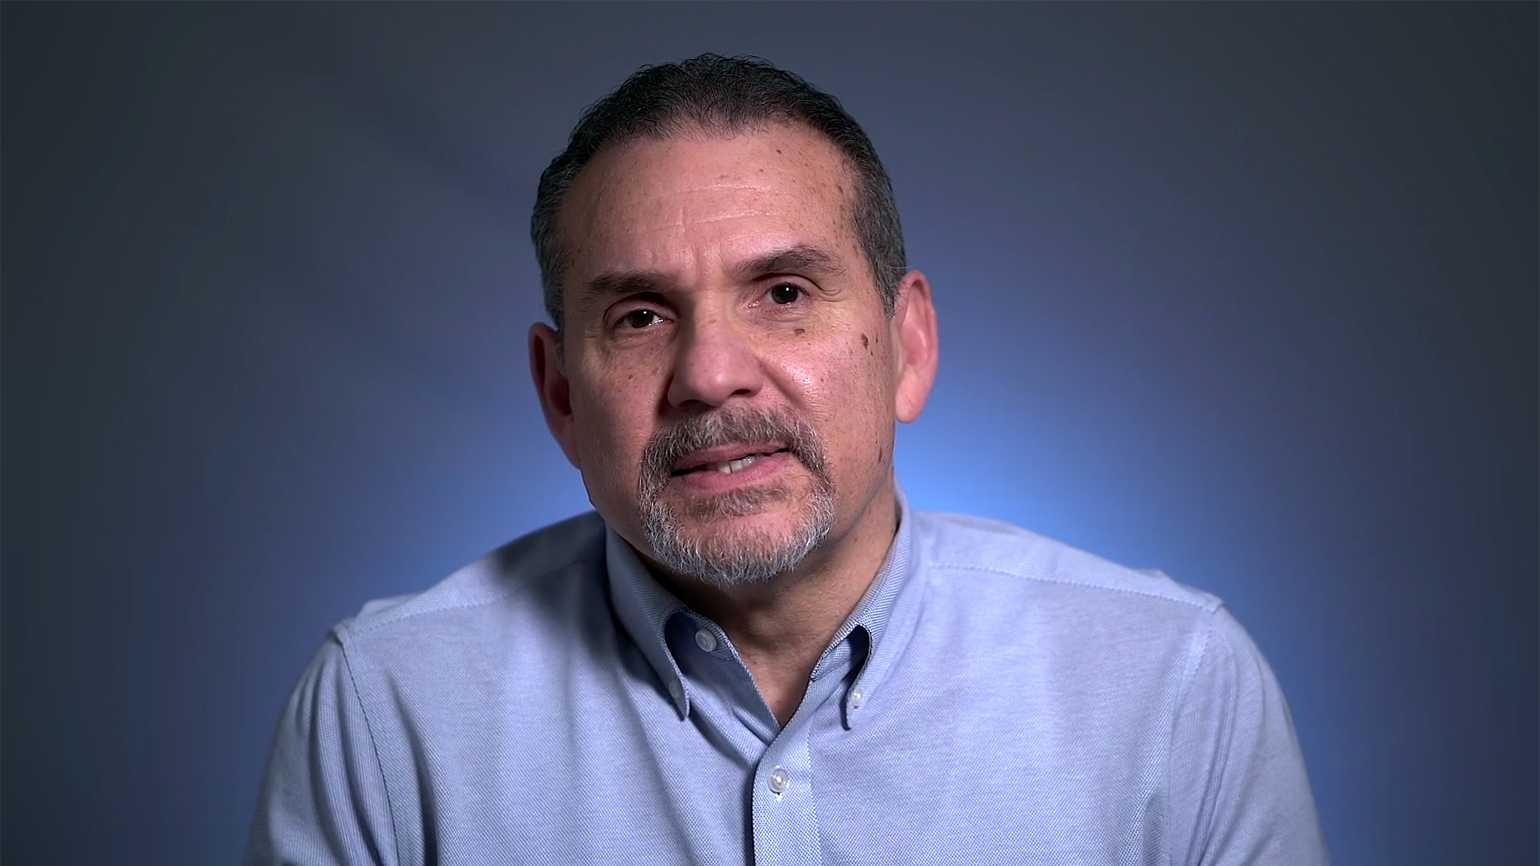 Guideposts' Vice President of Ministries Pablo Diaz